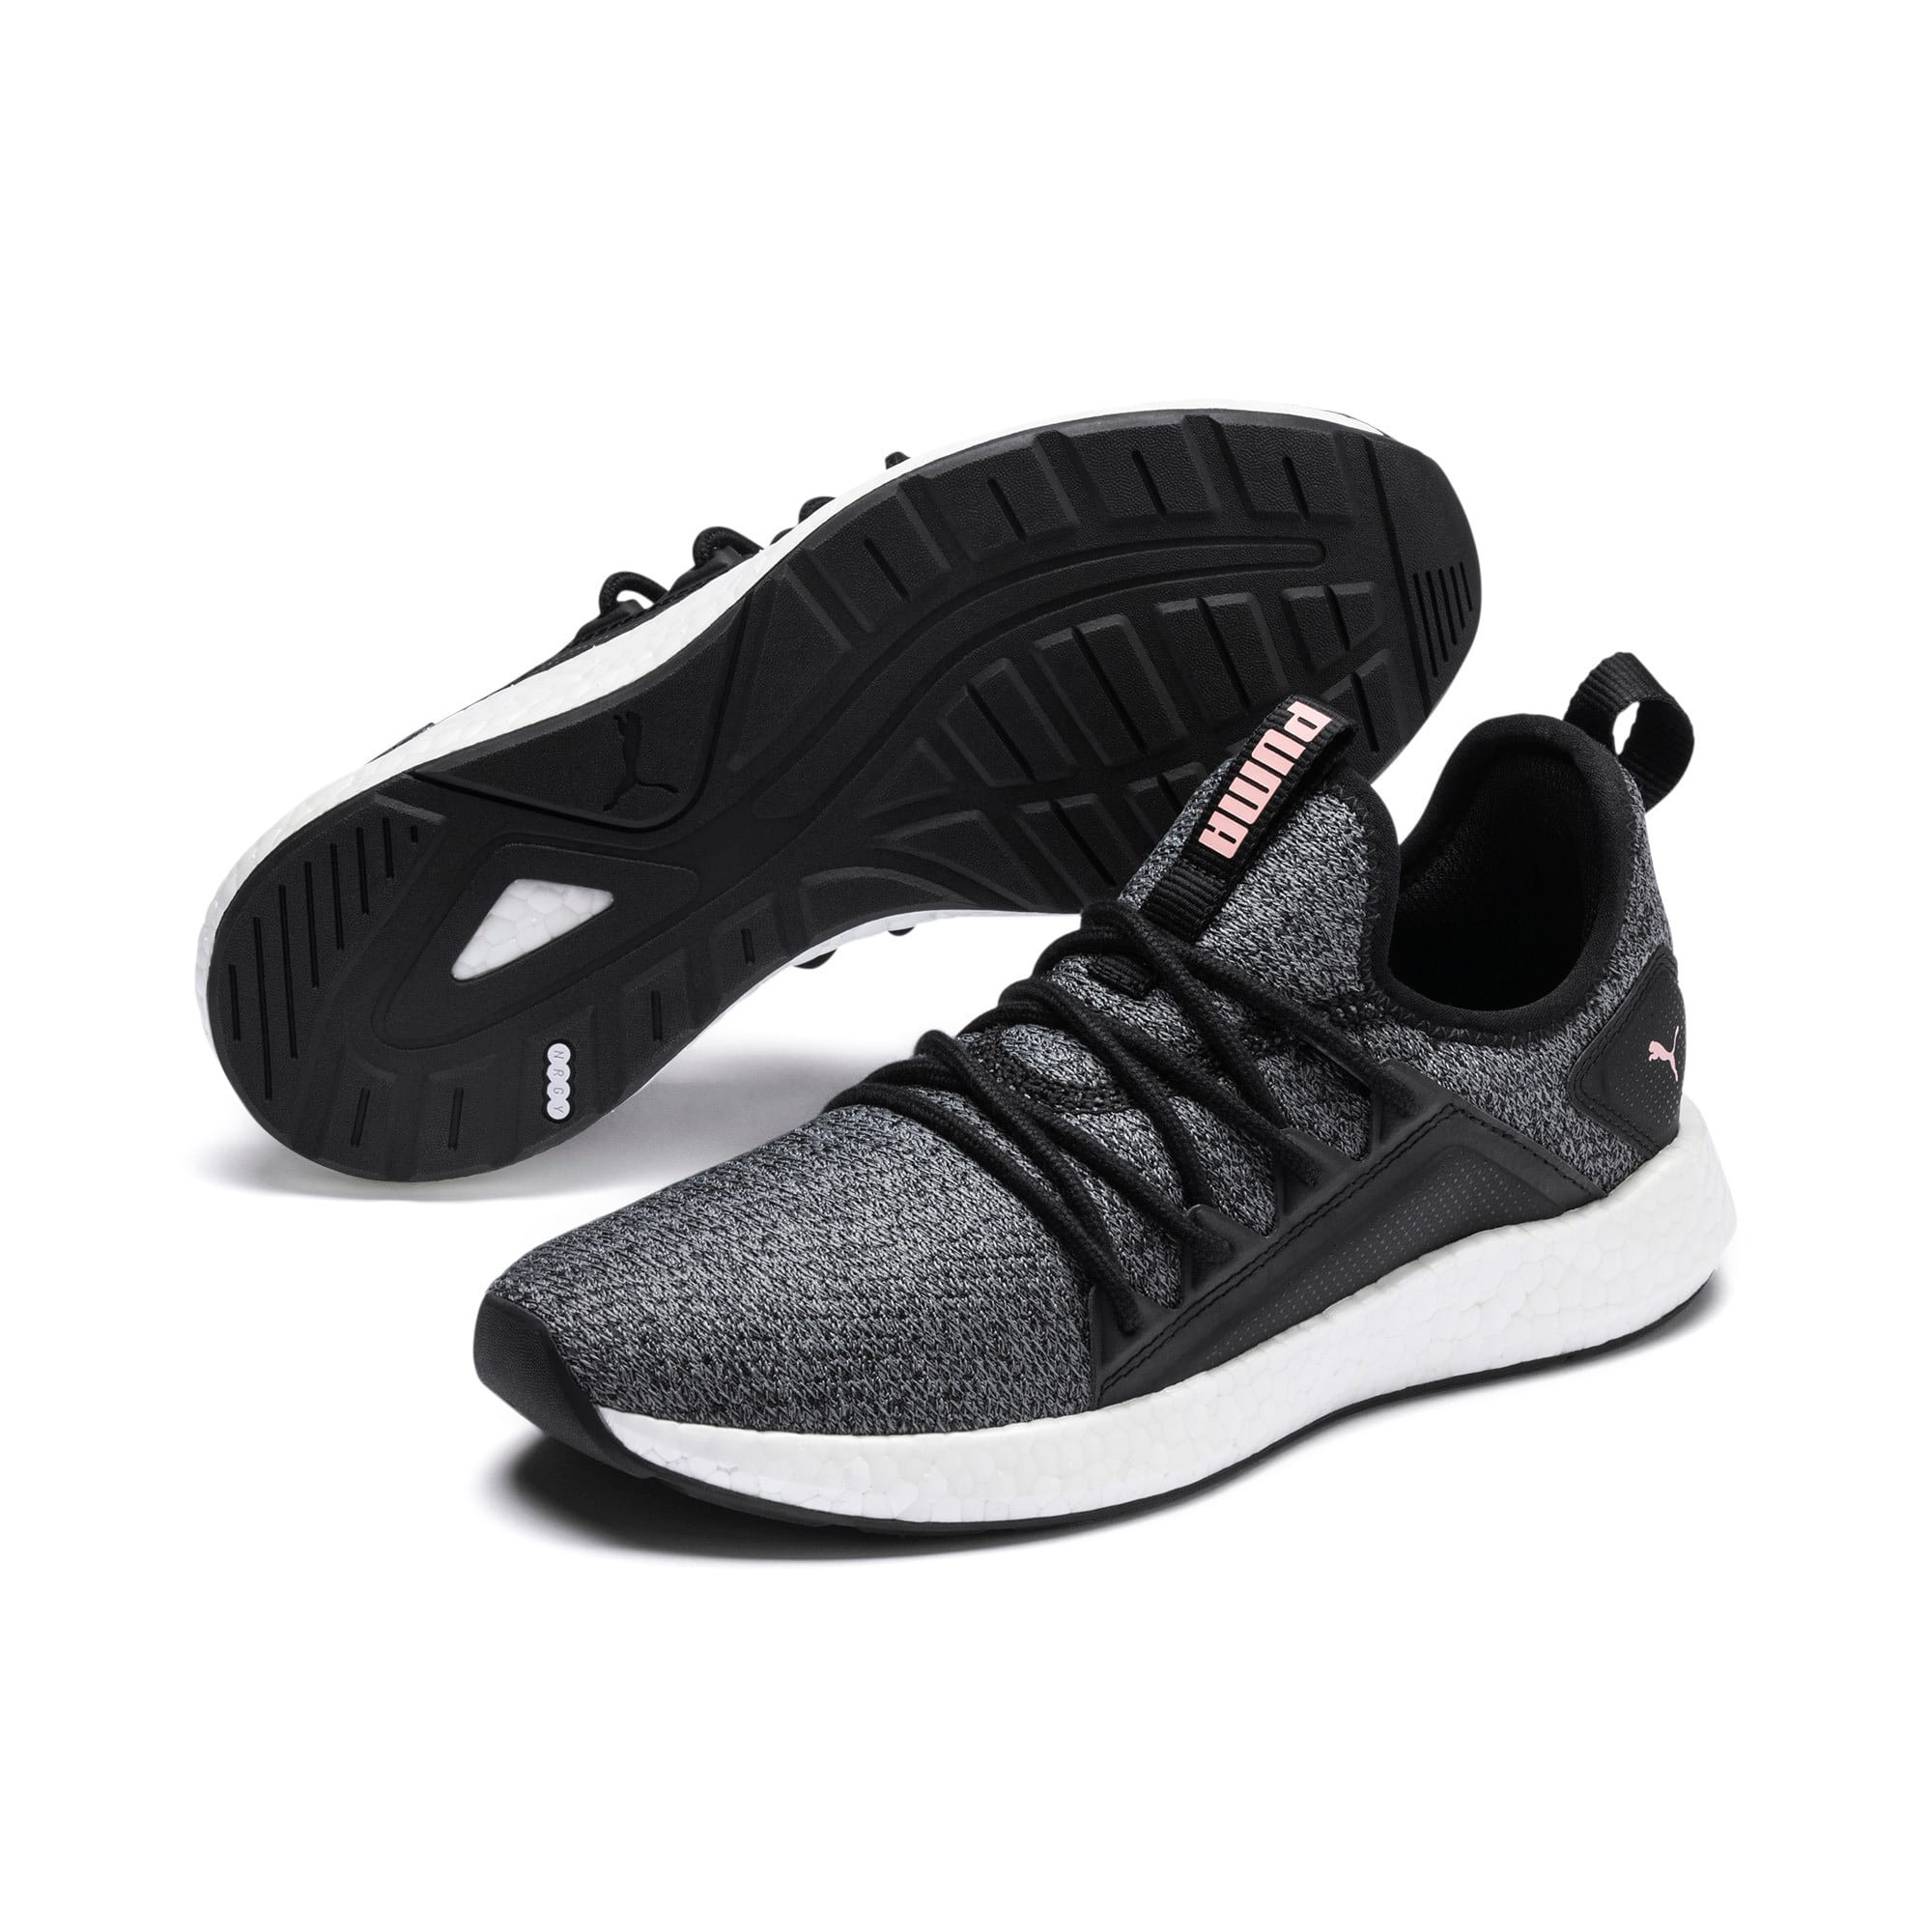 Thumbnail 3 of NRGY Neko Knit Women's Running Shoes, Puma Black-Bridal Rose, medium